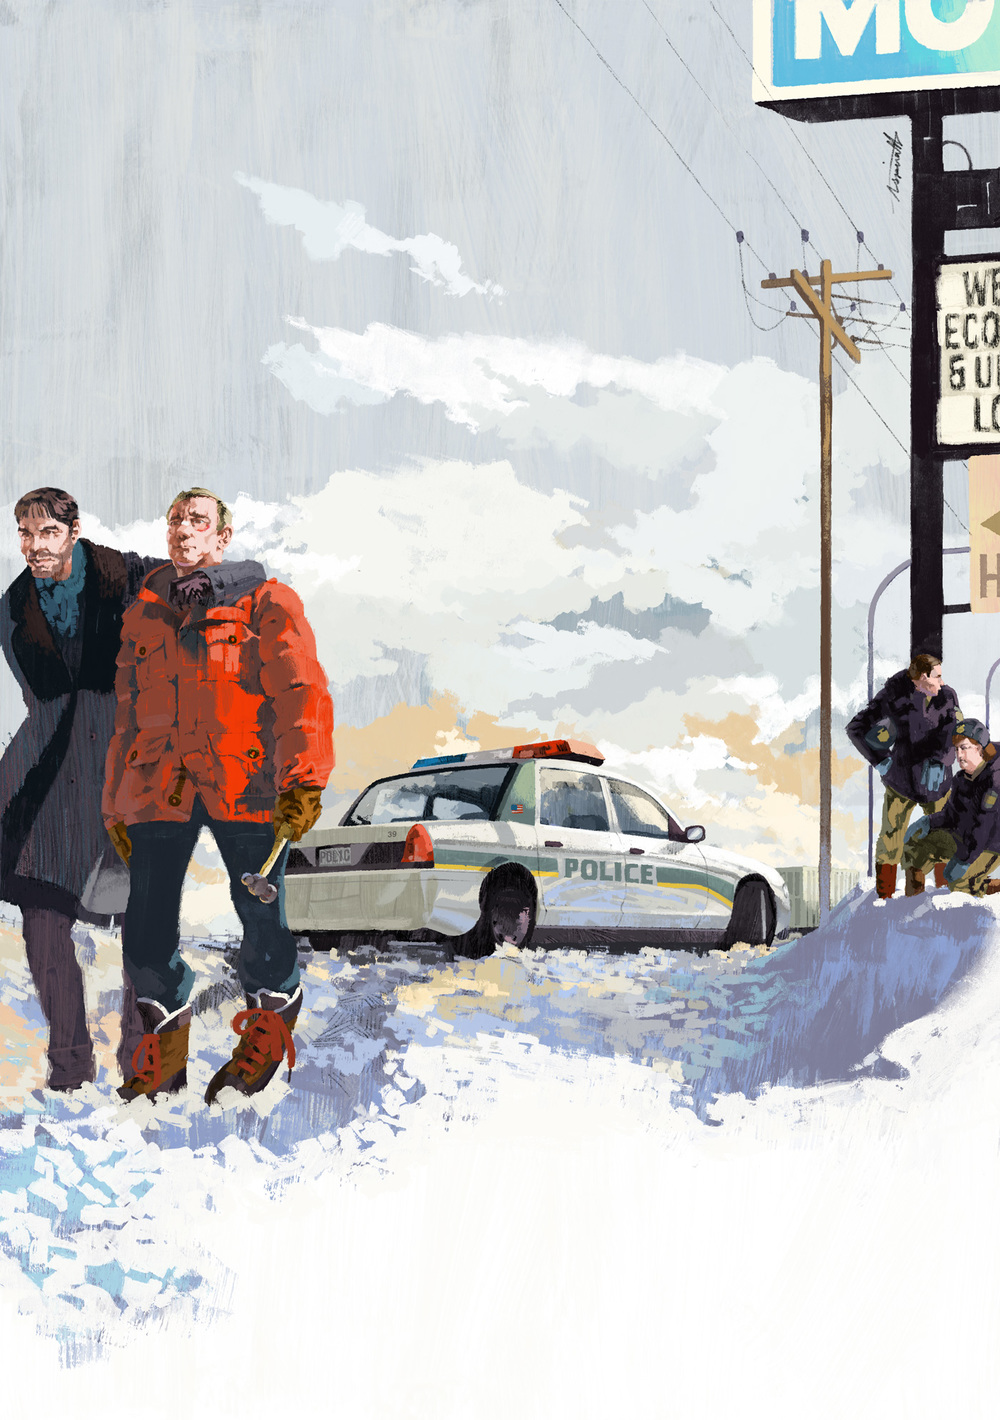 Billy-Bob Thornton and Martin Freeman star in the FX hit Fargo for The New Yorker by Marc Aspinall